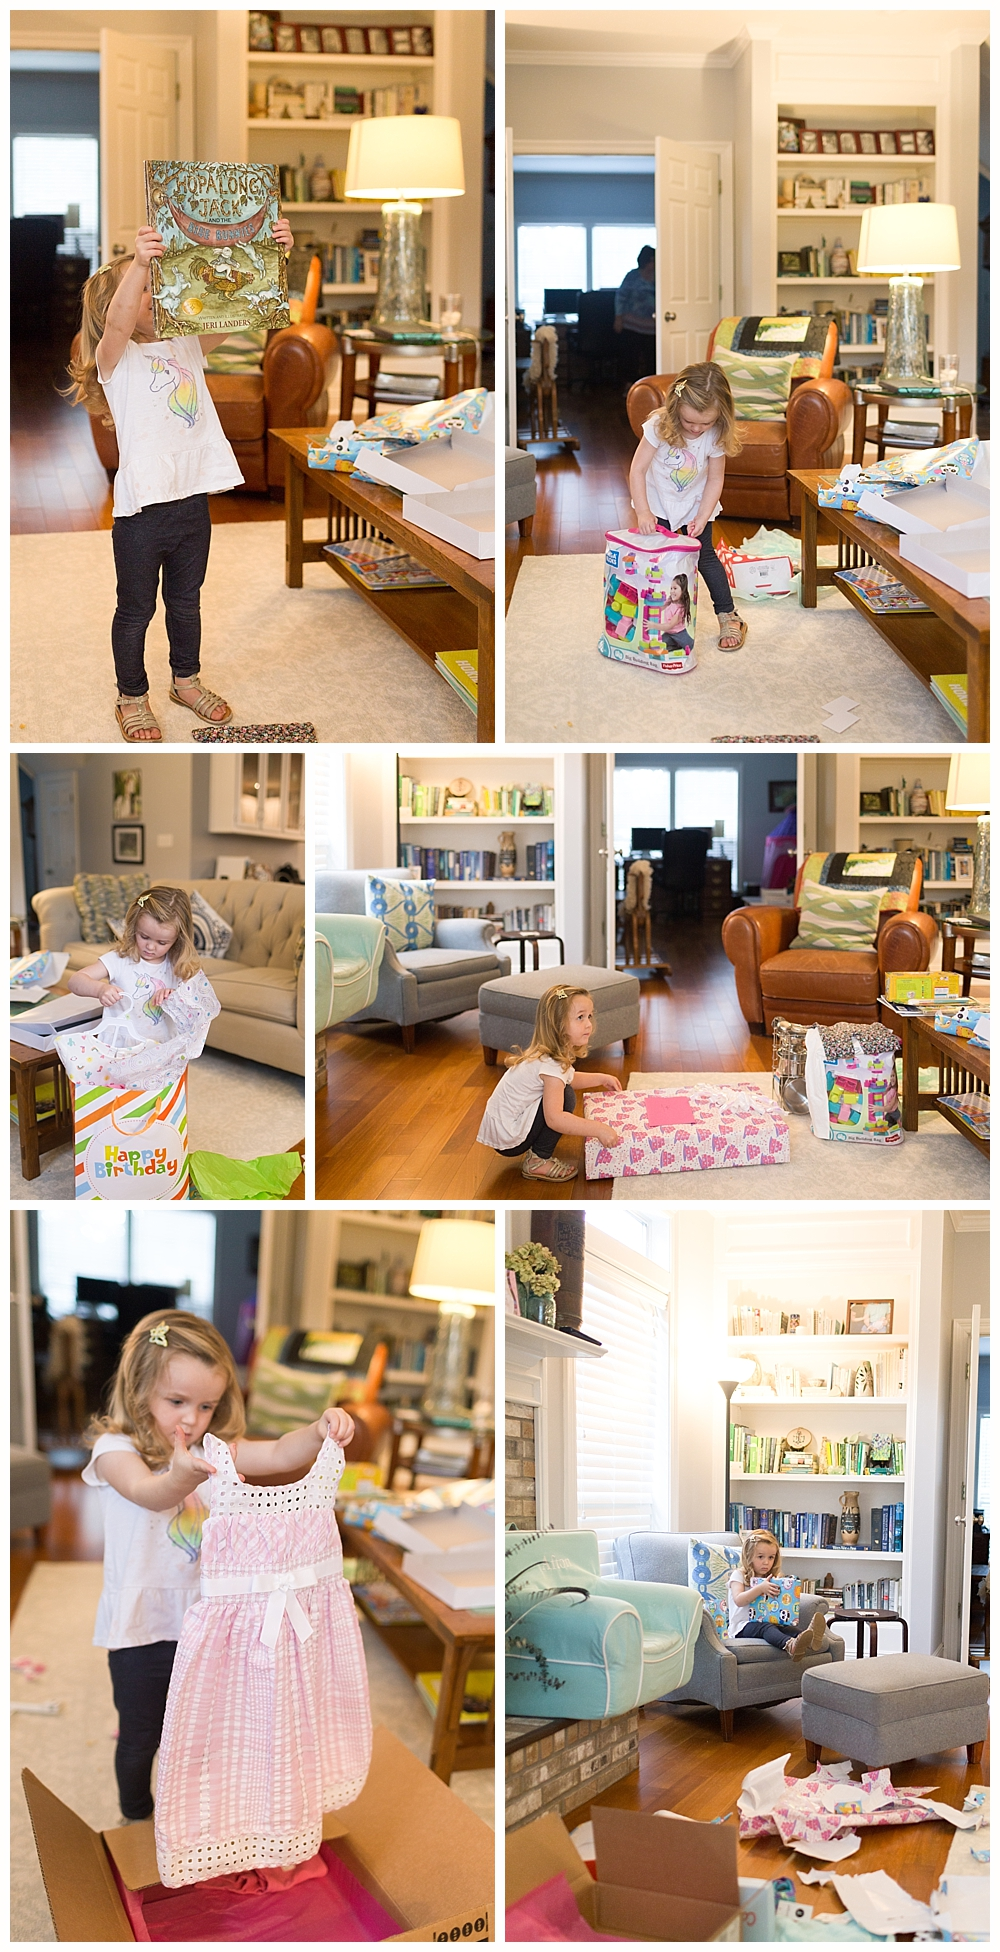 three-year-old girl opening birthday presents in living room